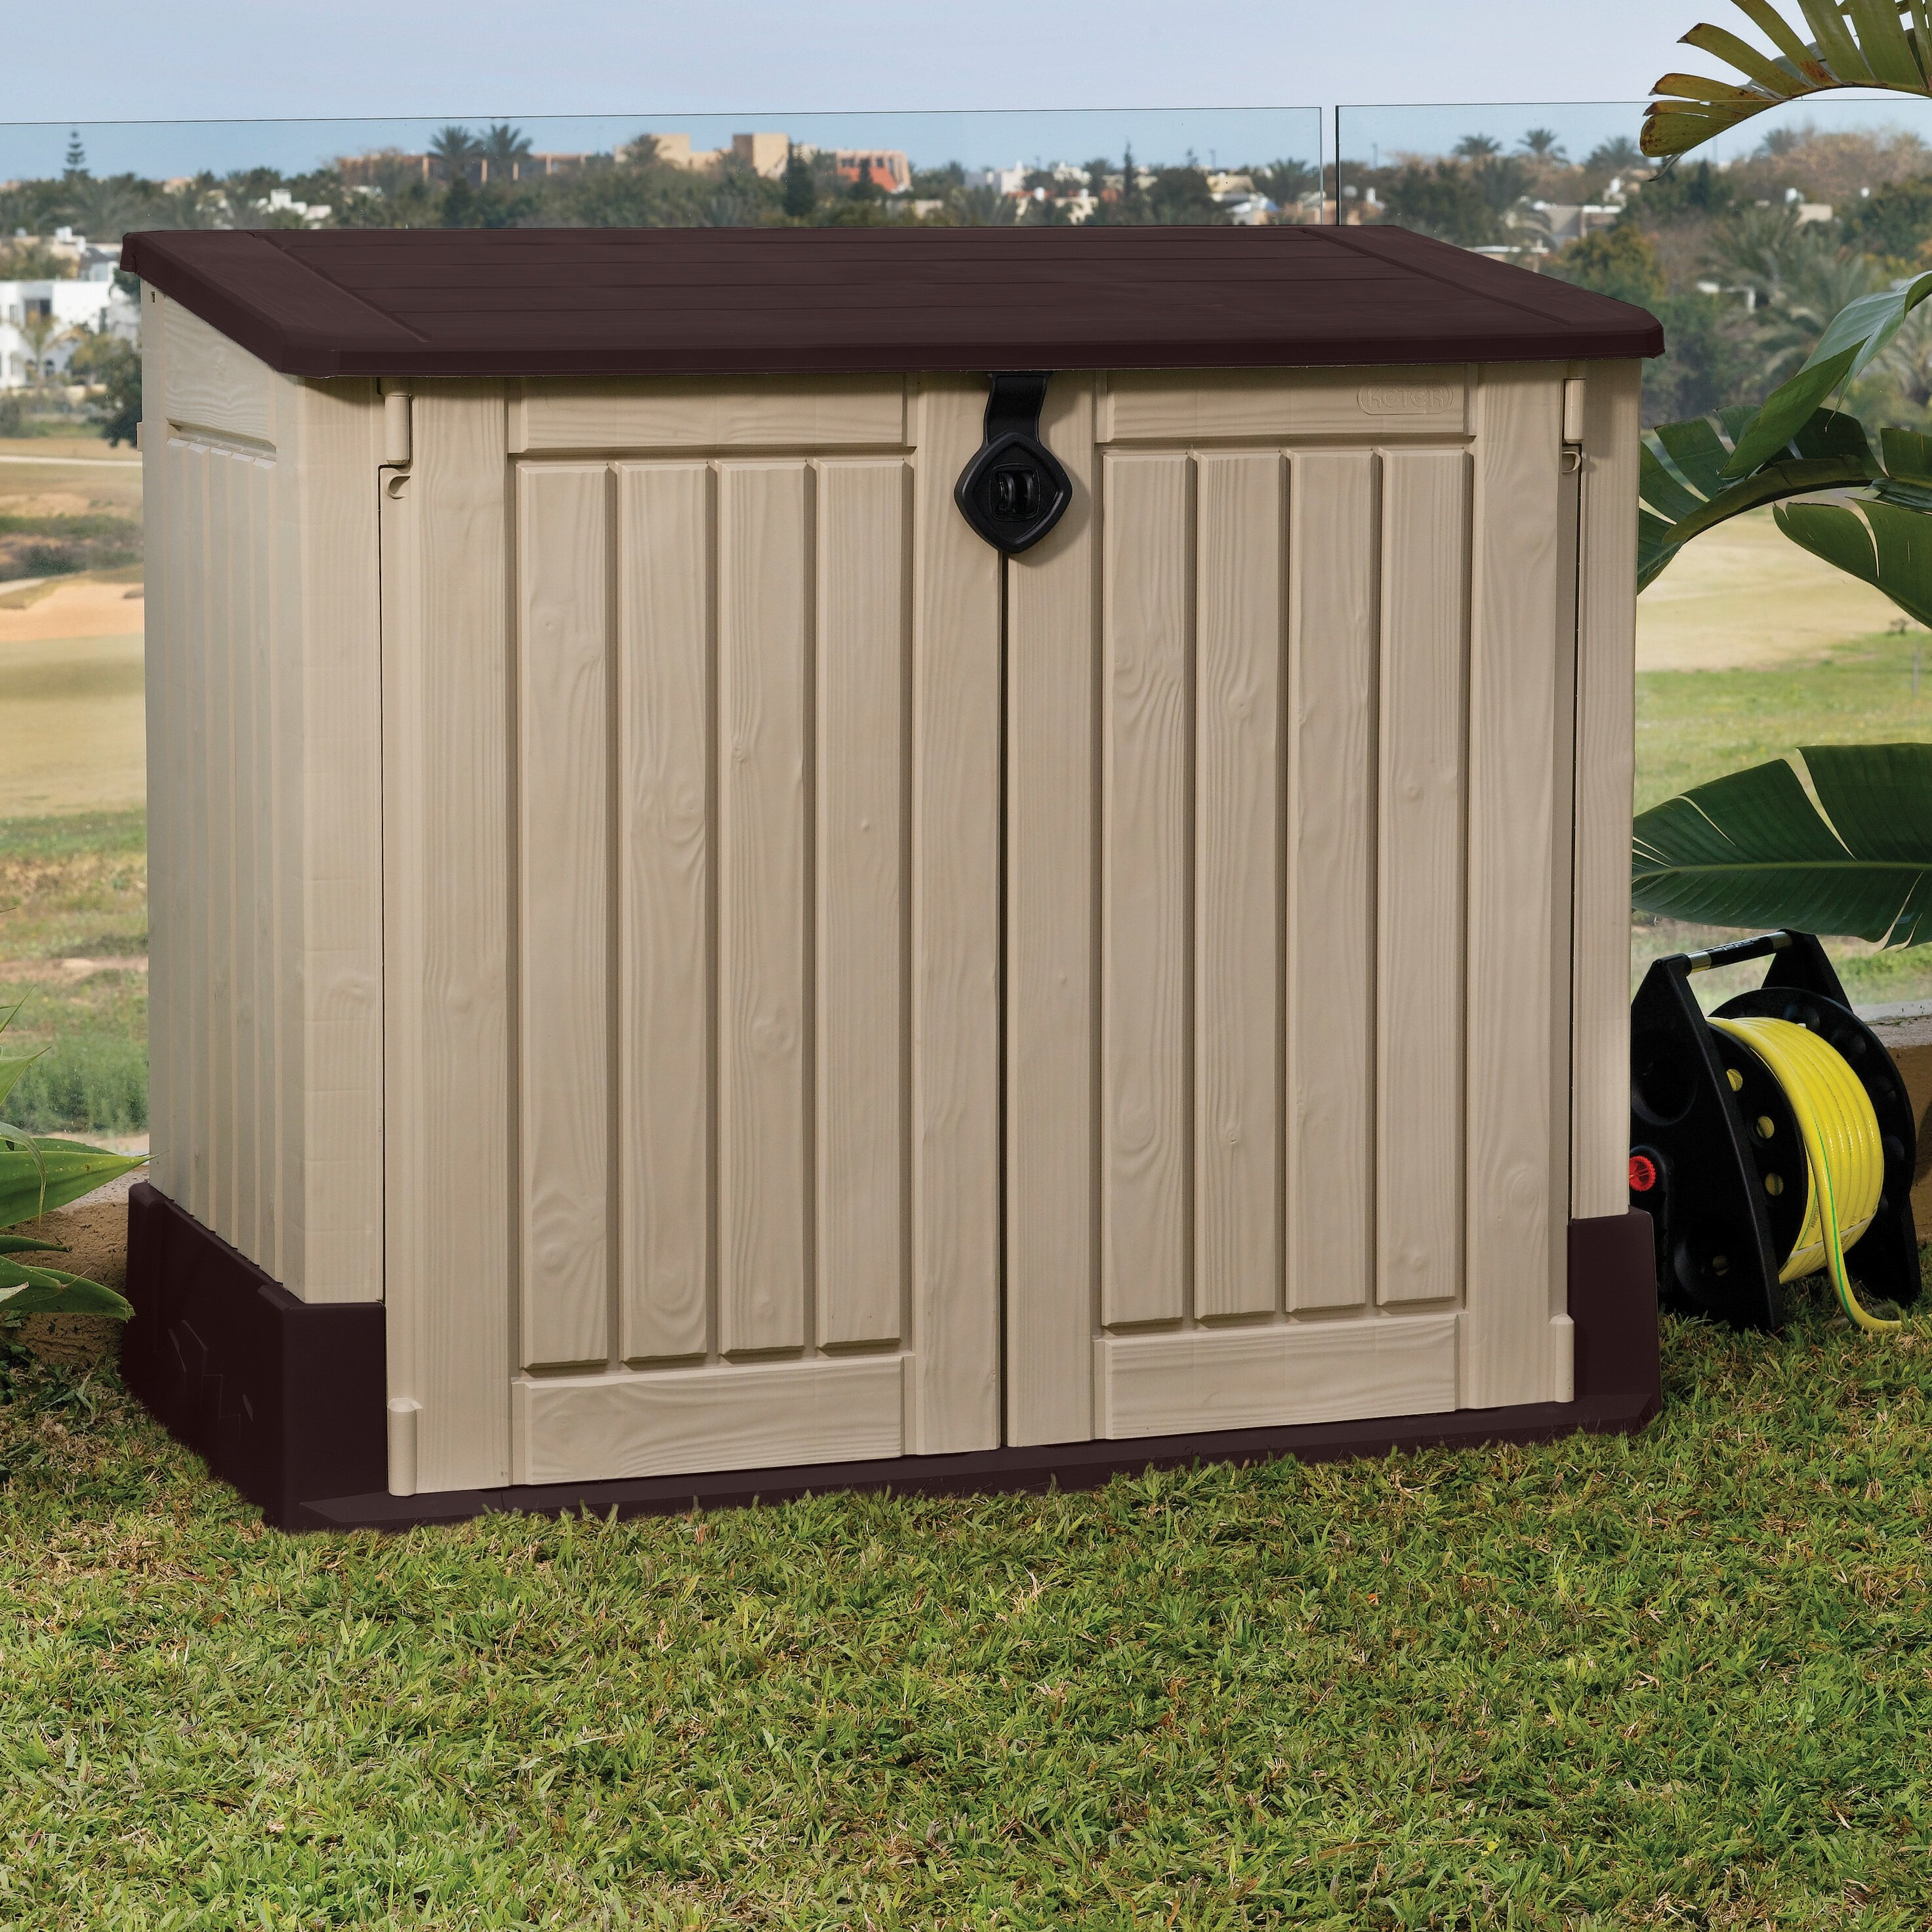 building custom metal buy size sheds home bird storage ideas extraordinary how gh garde feeder kits prefabricated plans house canada about shed melbourne wood antique lovely hobbit on garden wooden a much built are prefab kit homes pinterest